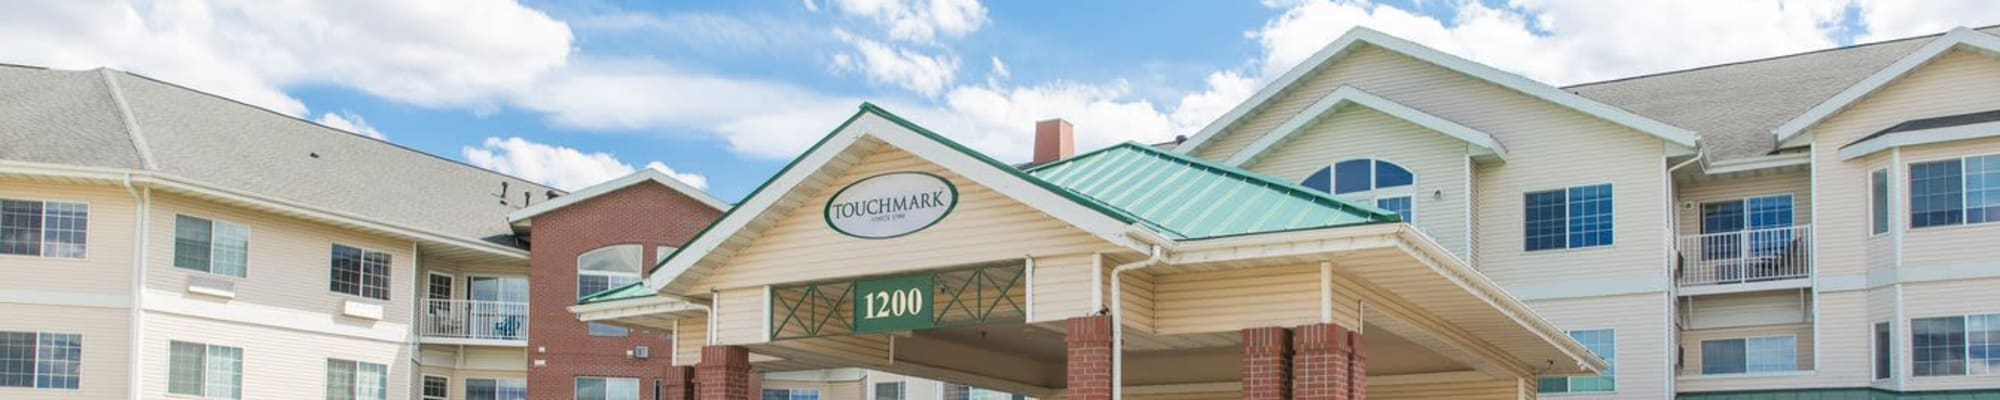 The memory care calendar from Touchmark at Harwood Groves in Fargo, North Dakota